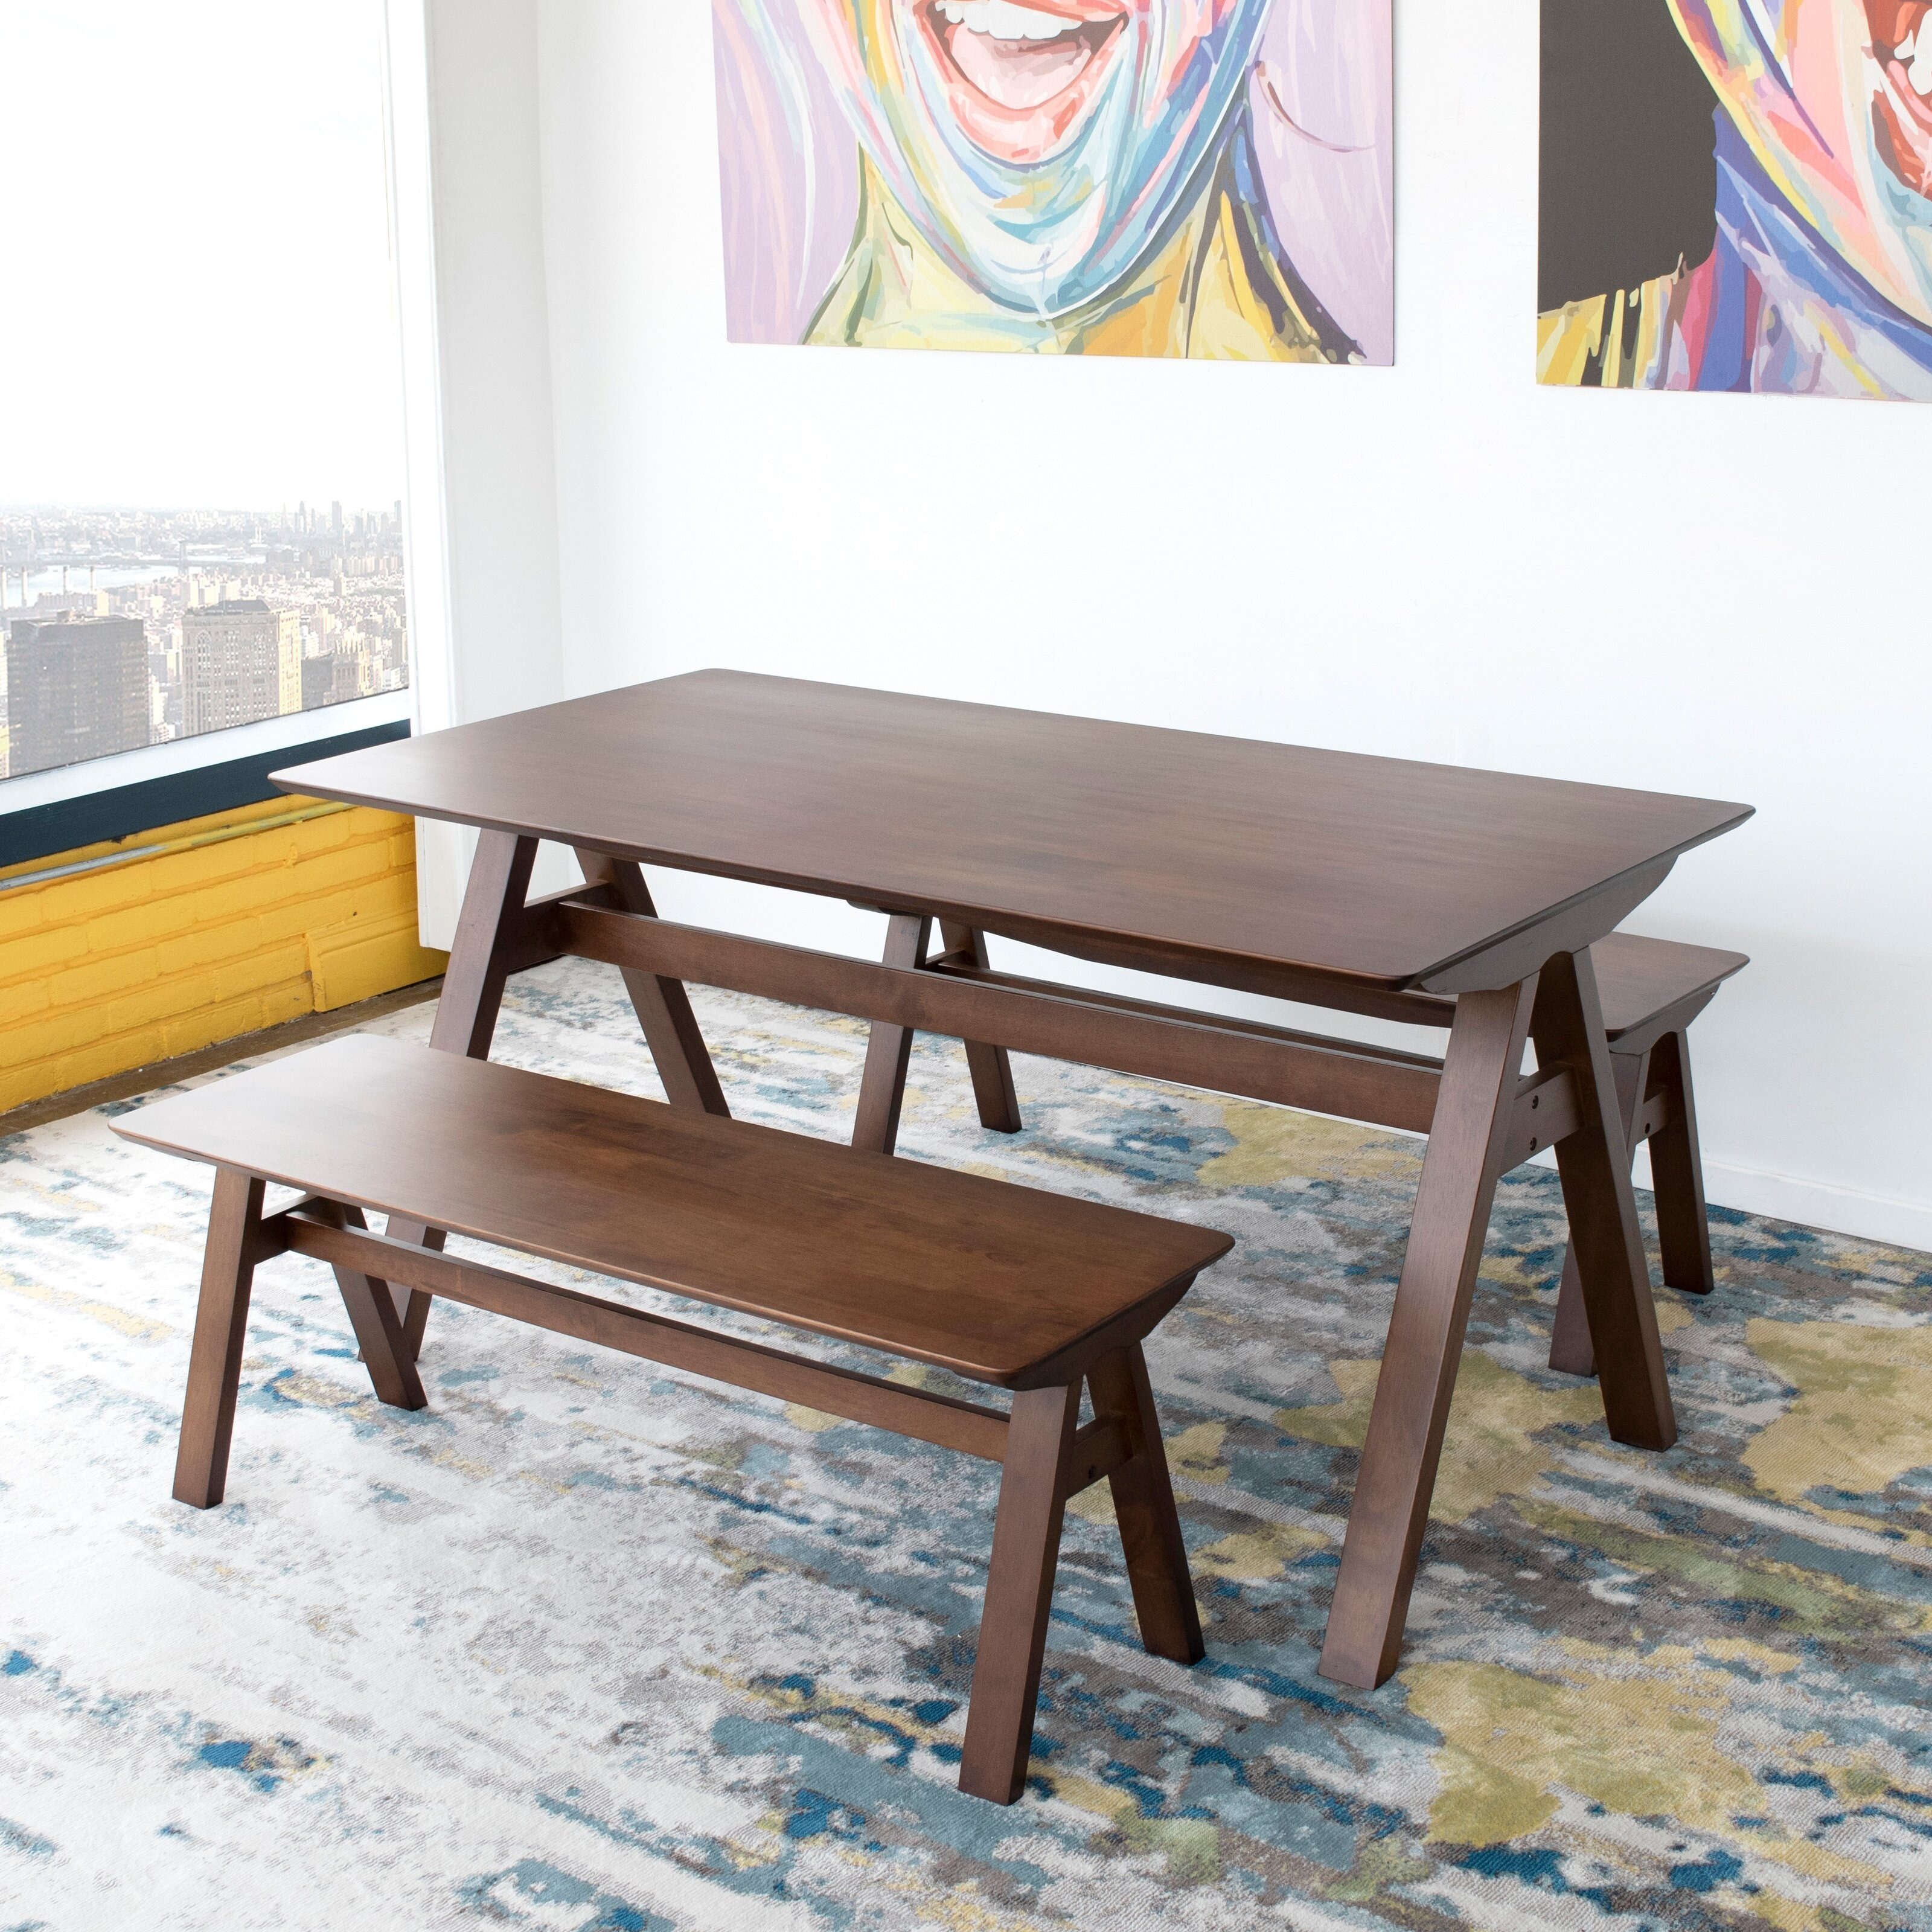 Mid Century Modern Cabrillo Solid Wood Dining Table 29 5 H X 59 W X 31 5 D On Sale Overstock 32243564